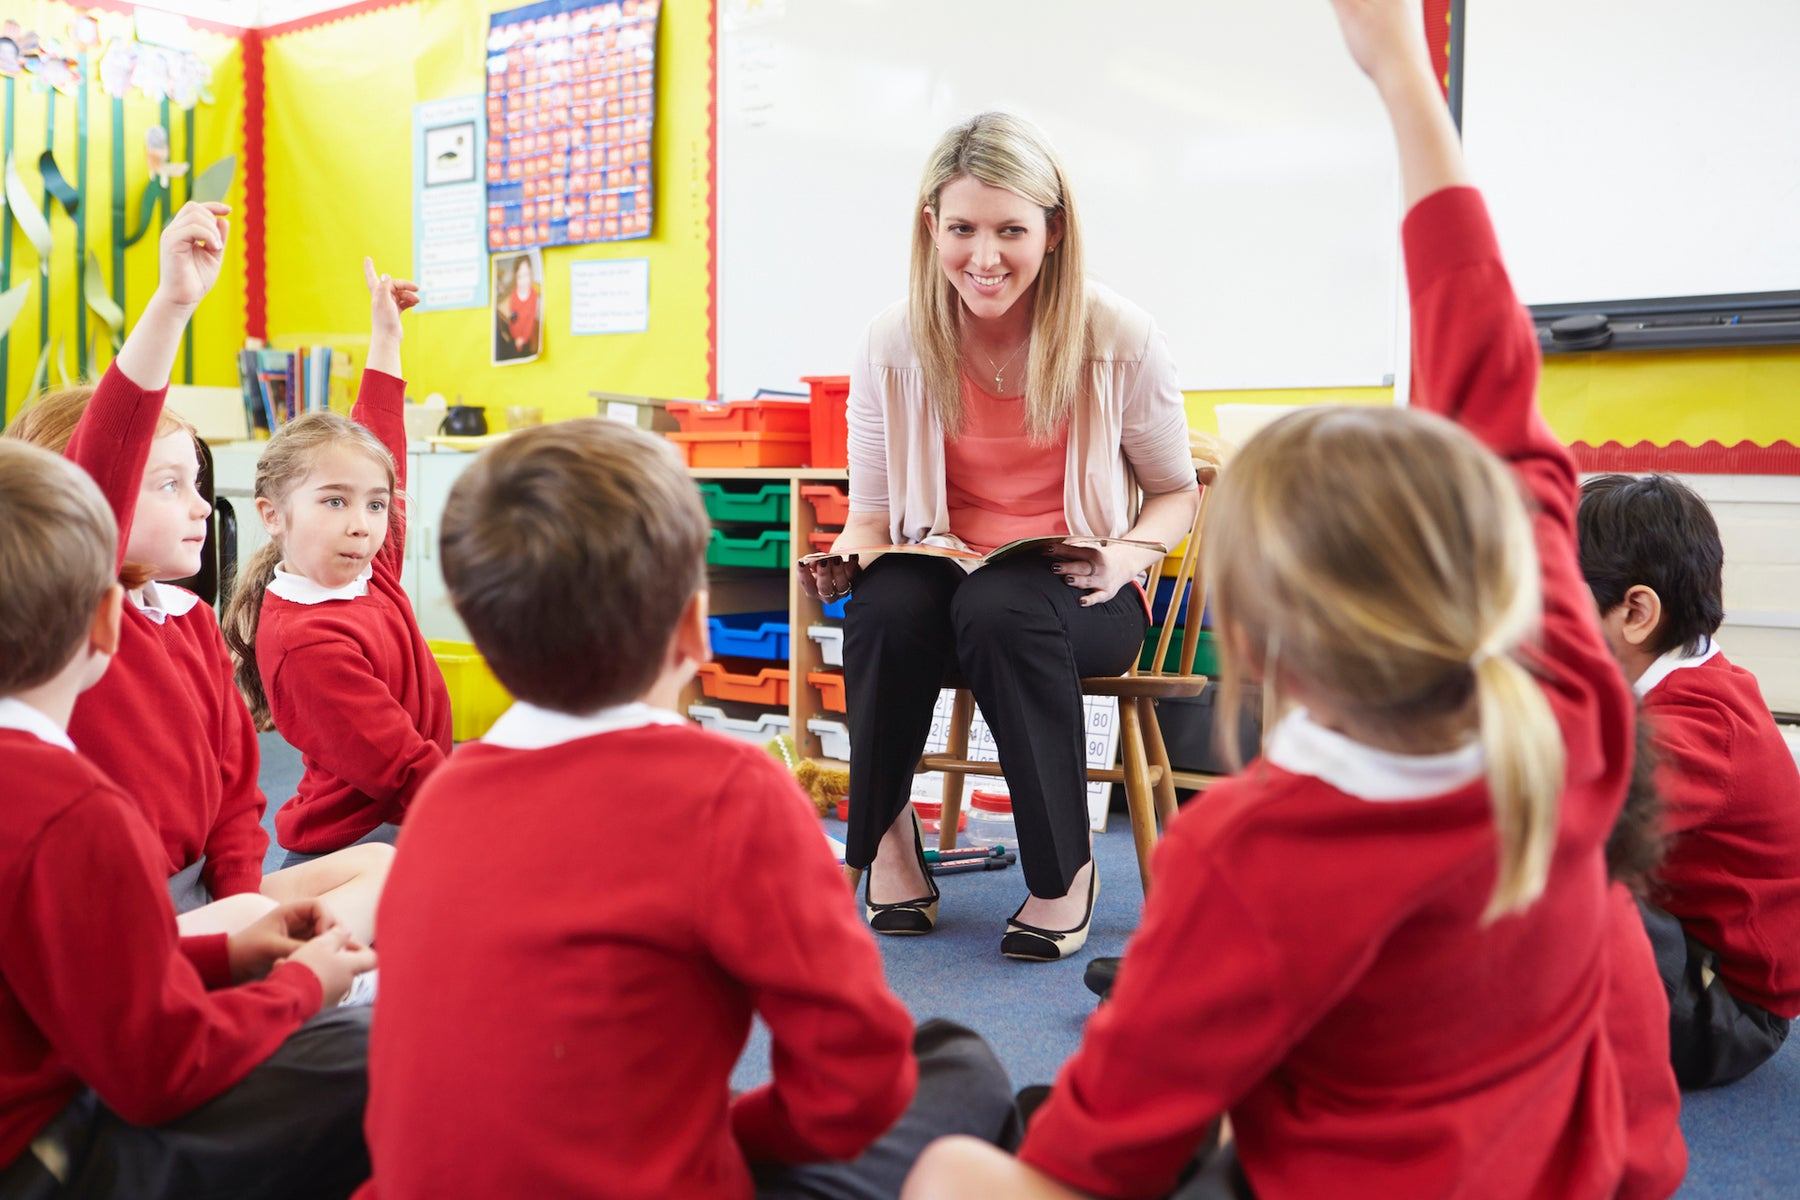 Is a career in primary teaching right for me?